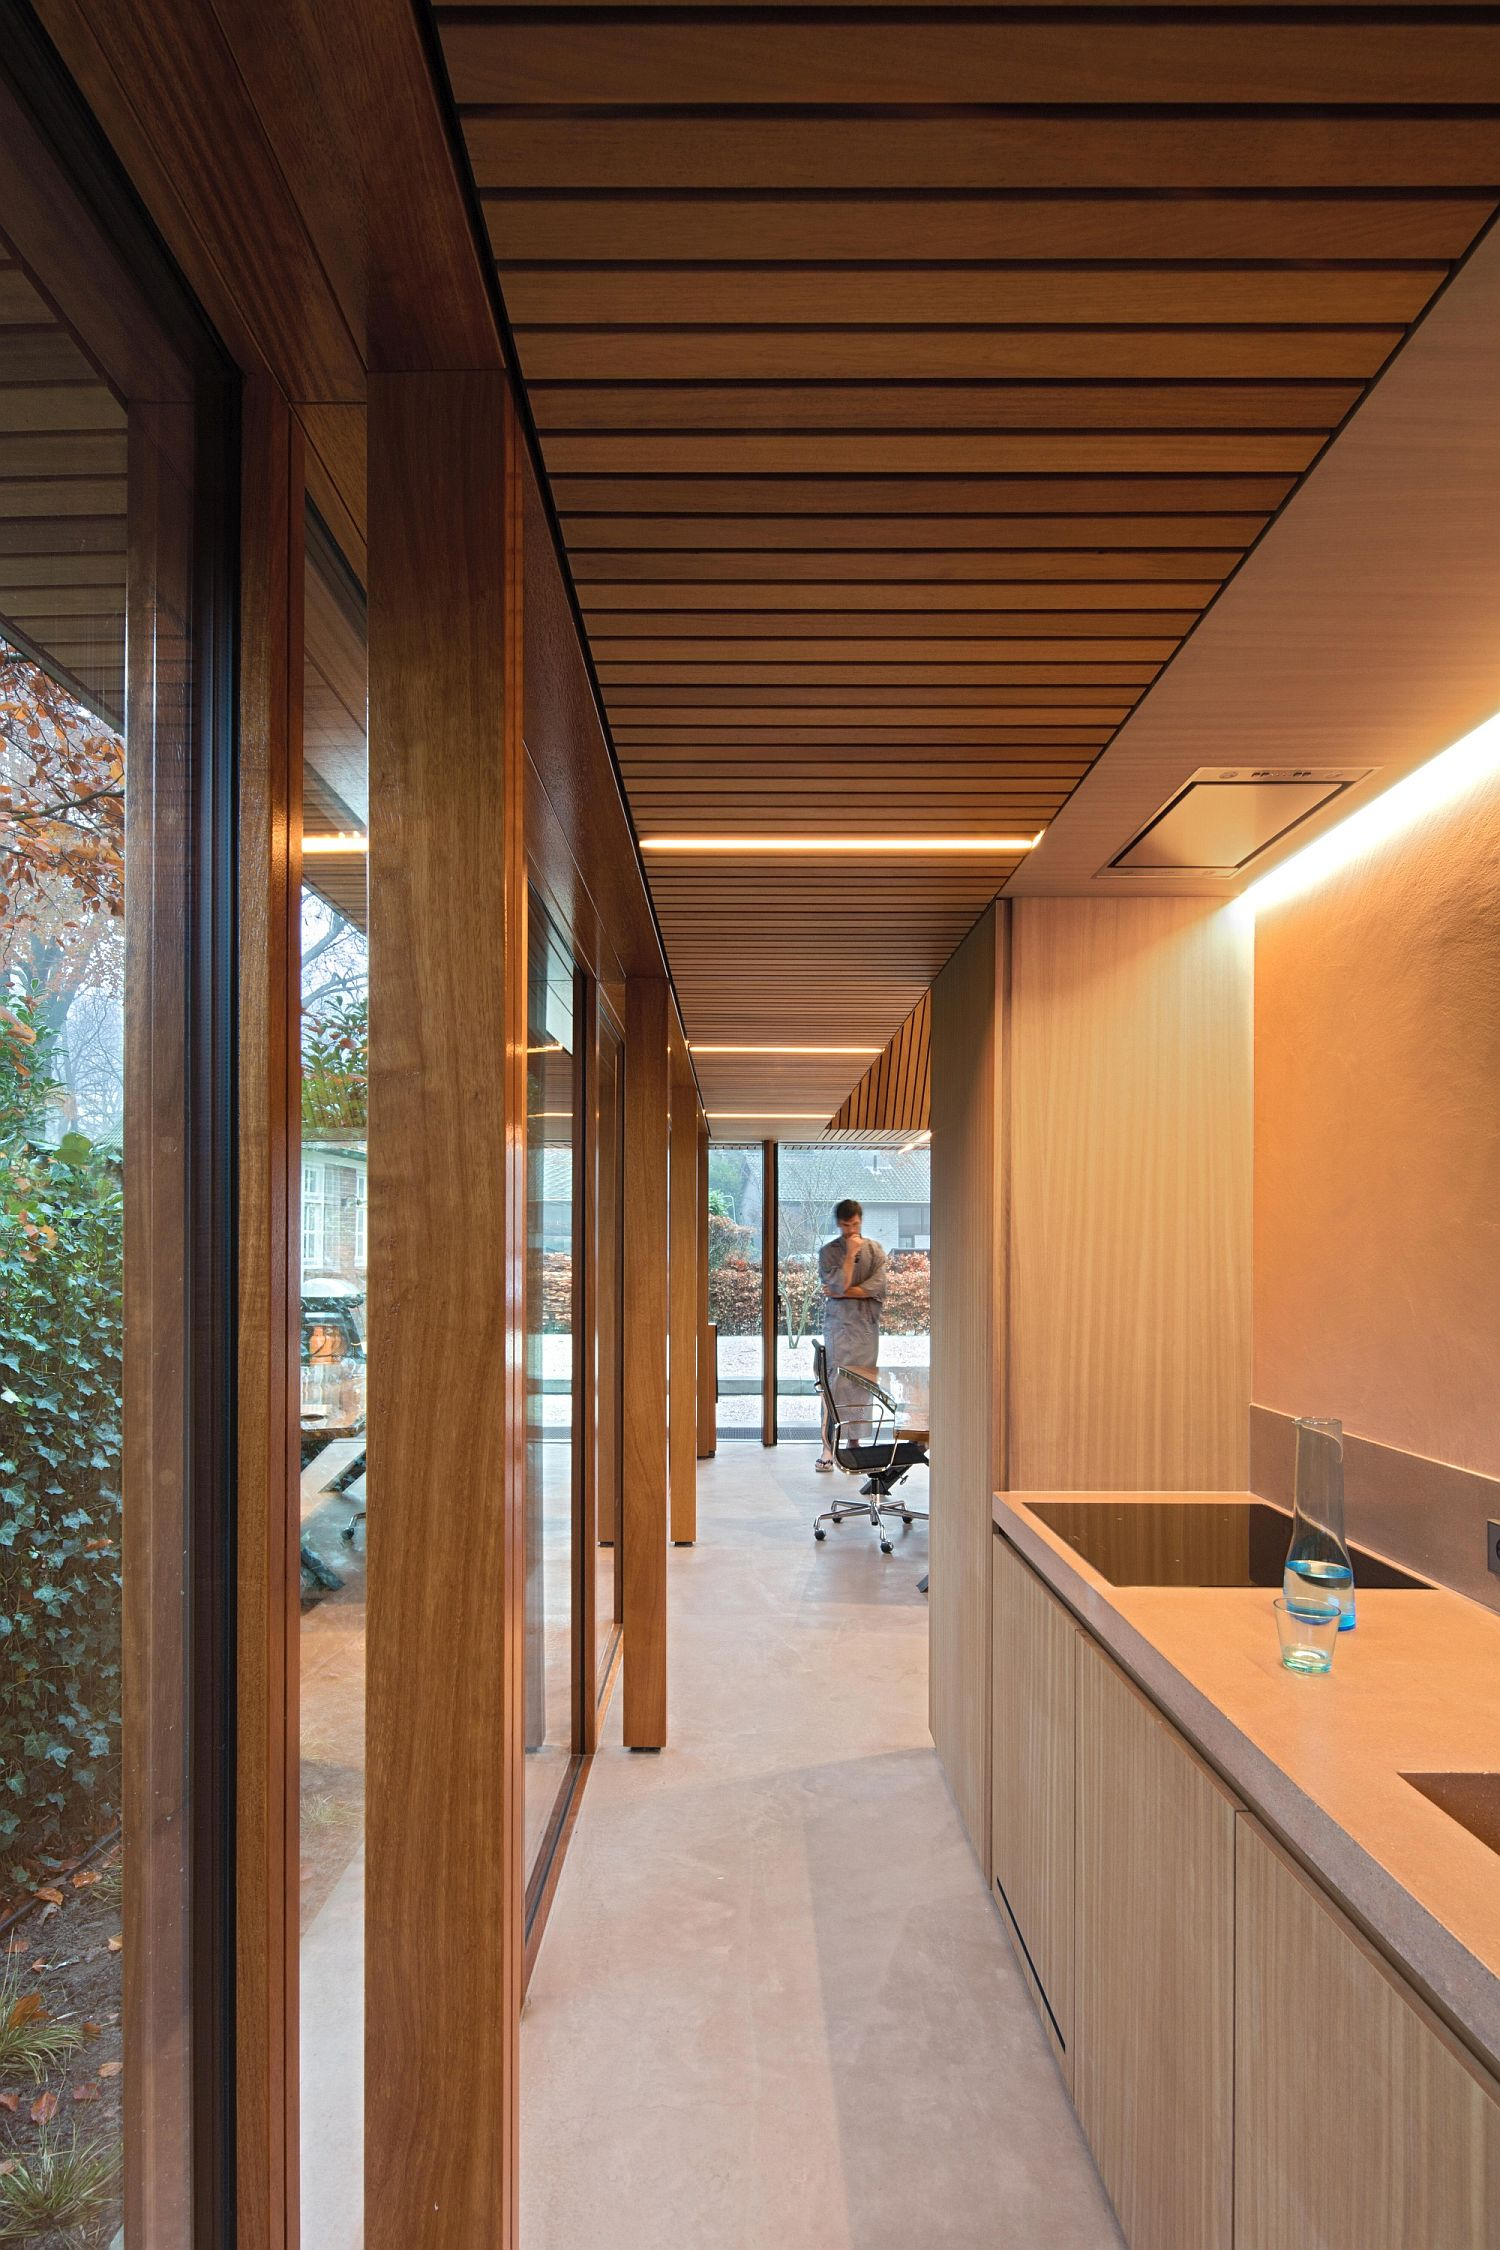 Spacious office pavilion in the garden is both inspiring and relaxing